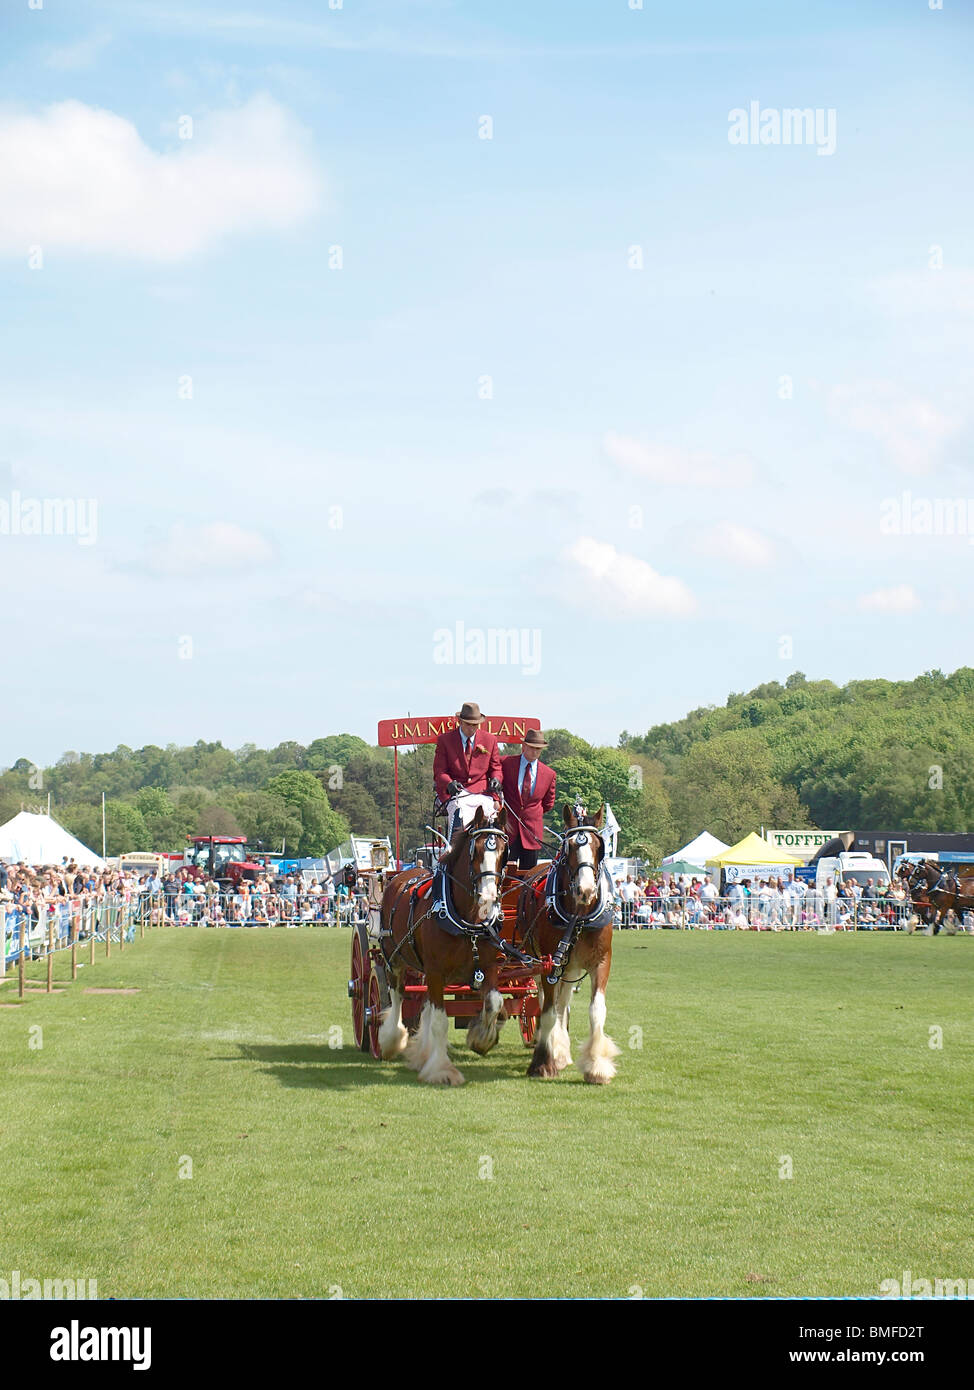 Stagecoach/brewery cart pulled by Shire horses - Stock Image